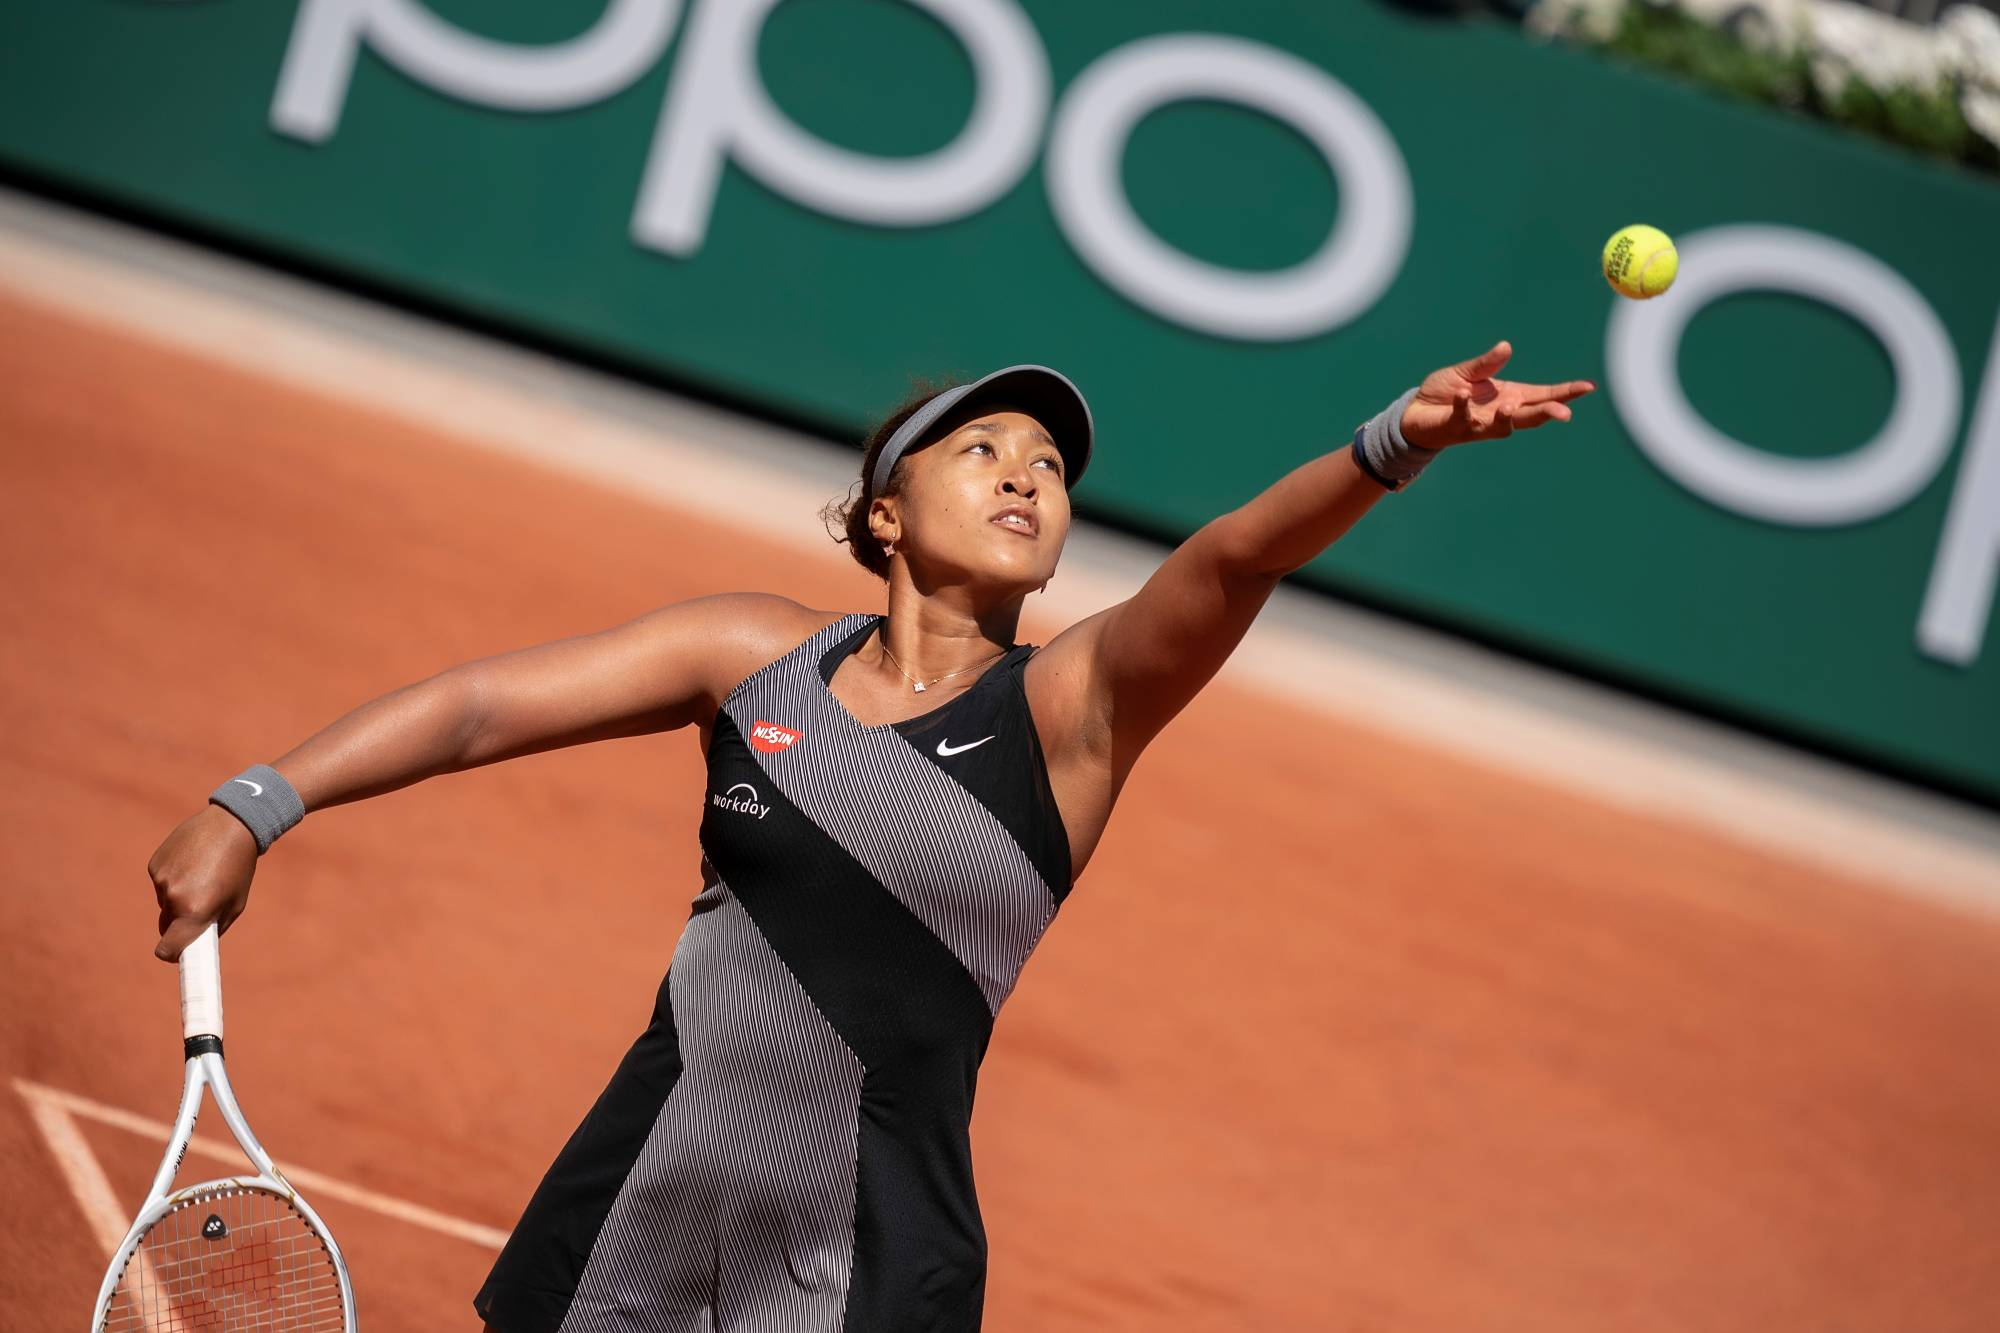 Naomi Osaka is expected to participate in the Tokyo Olympics after skipping Wimbledon to spend time with friends and family. | USA TODAY / VIA REUTERS